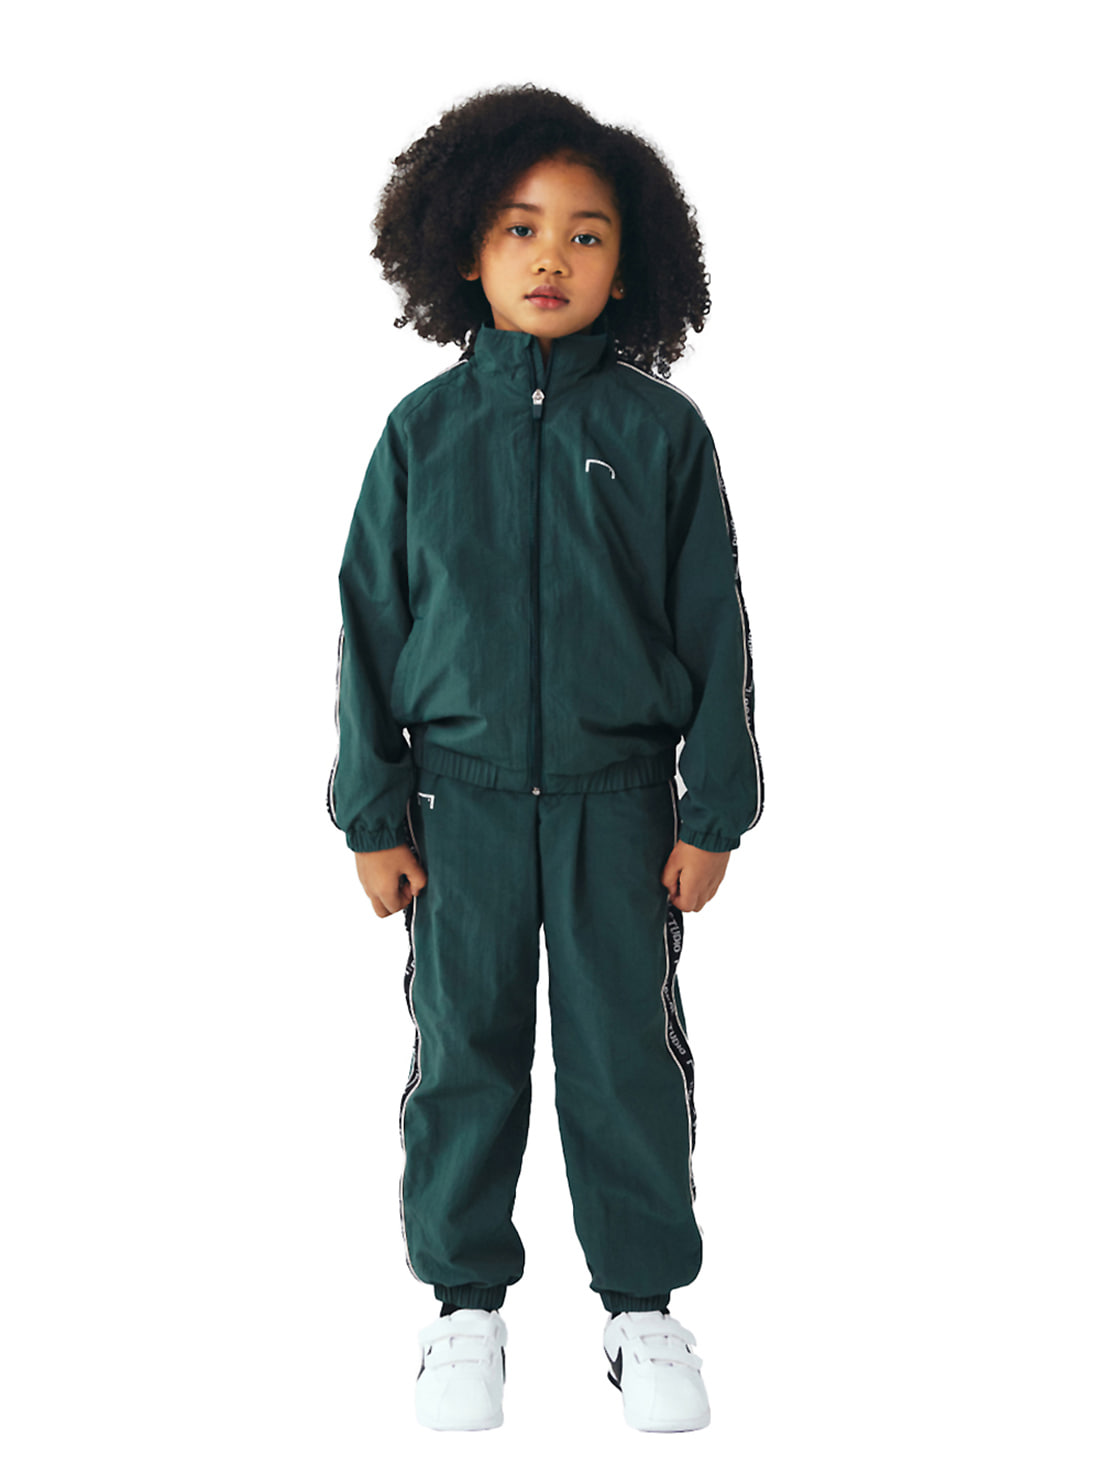 GOALSTUDIO [10% OFF] (KIDS) SMALL LOGO TRACK JACKET & PANTS SET - DARK GREEN